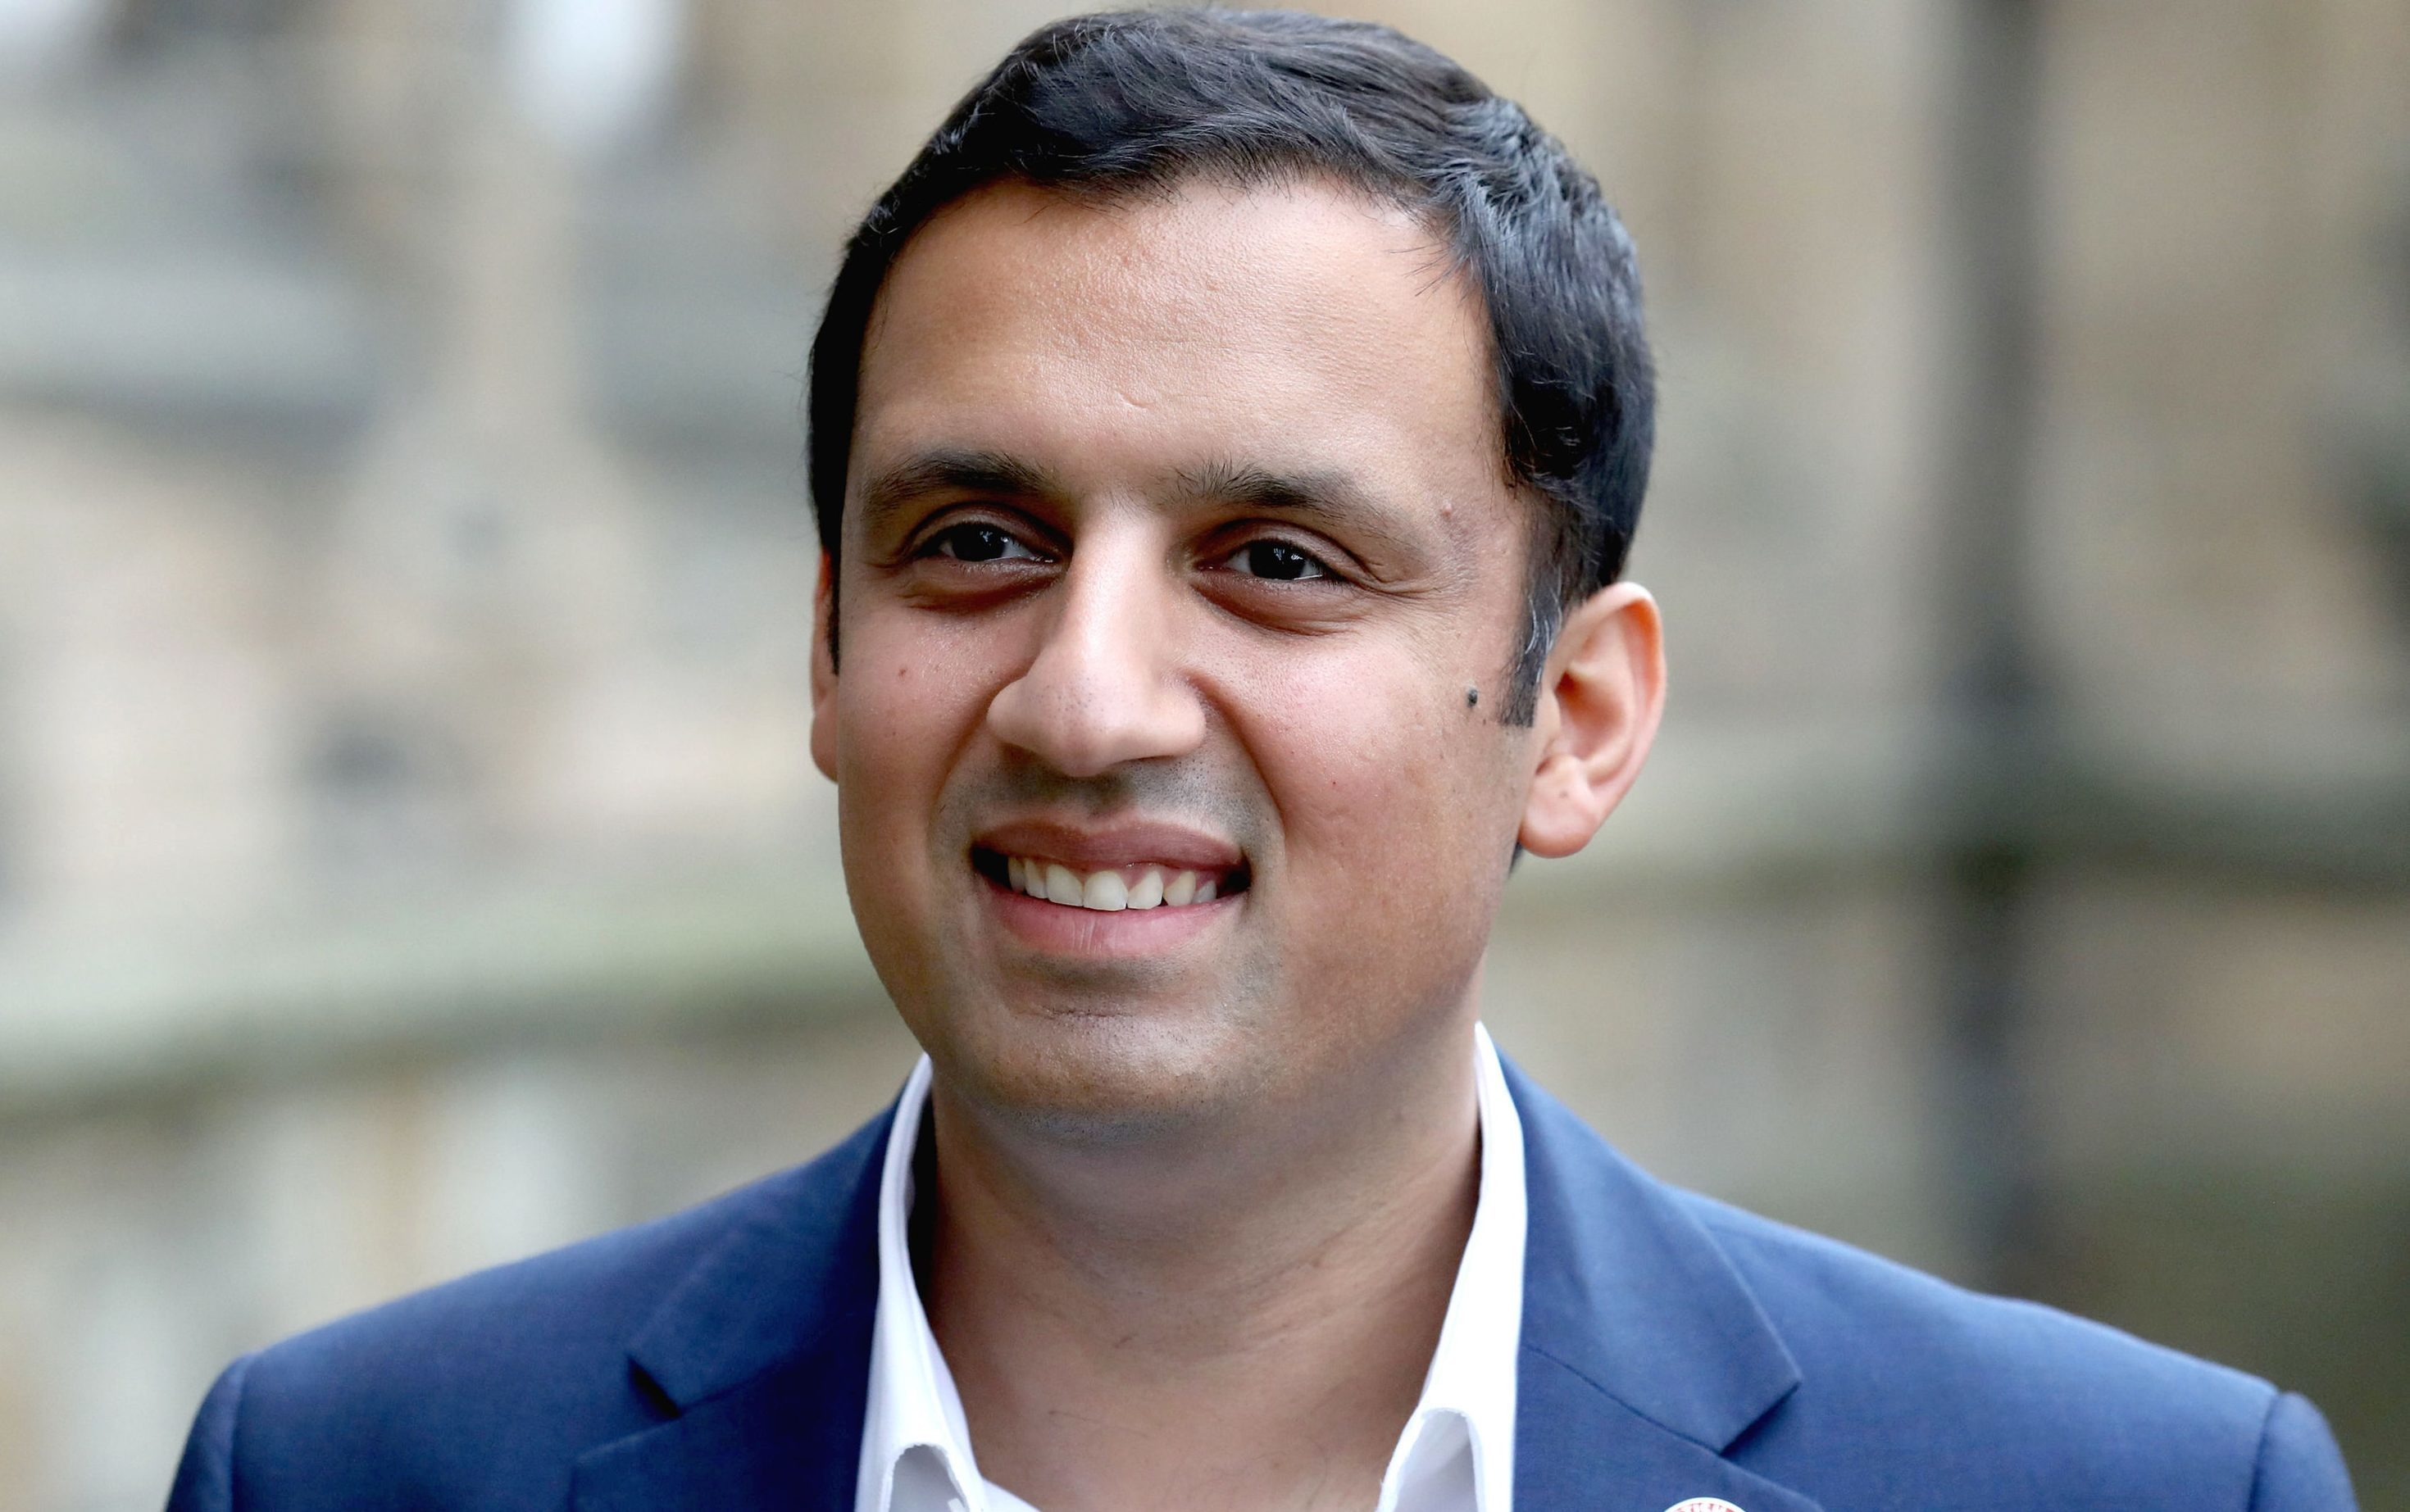 POLITICS: LABOUR LEADER SARWAR SAYS STURGEON SHOULD QUIT IF SHE BROKE CODE